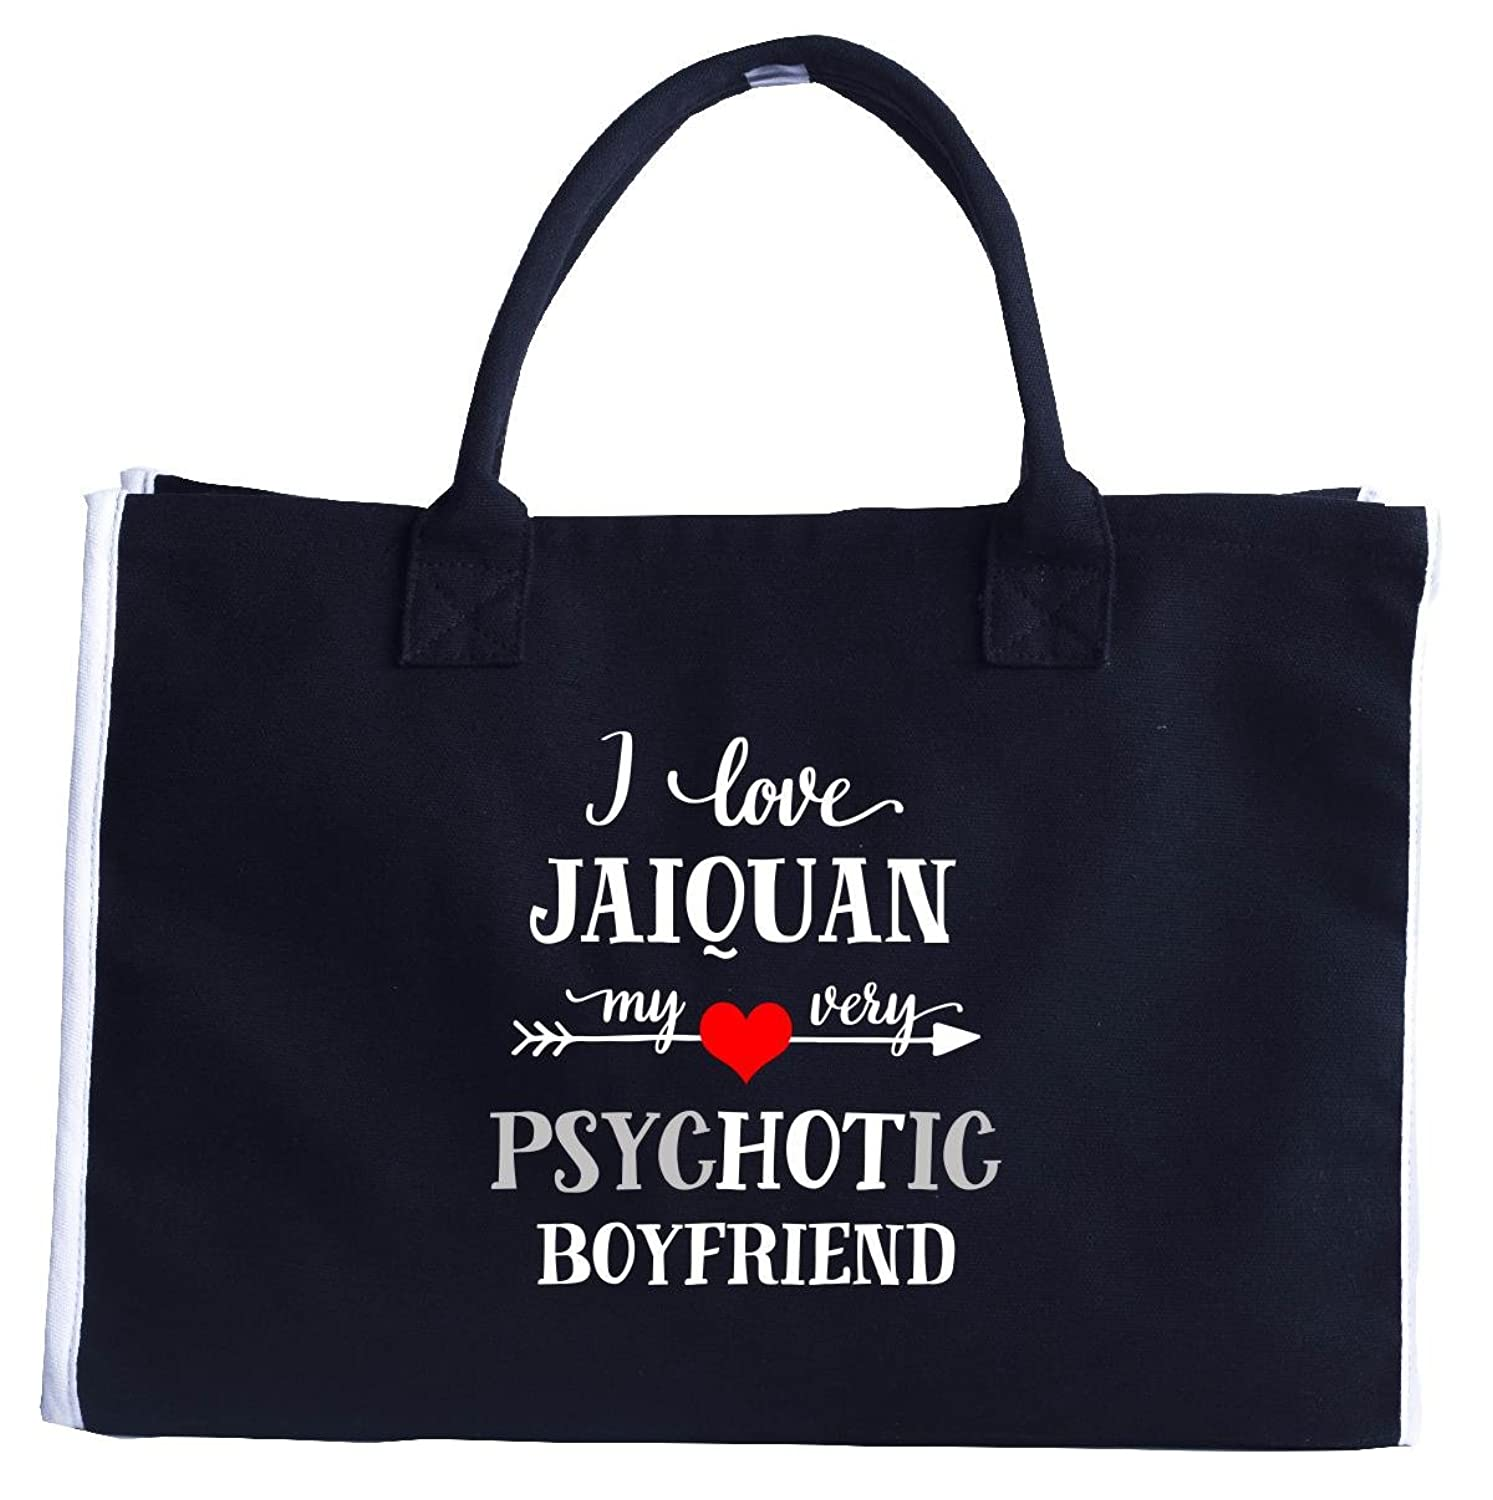 I Love Jaiquan My Very Psychotic Boyfriend. Gift For Her - Fashion Tote Bag